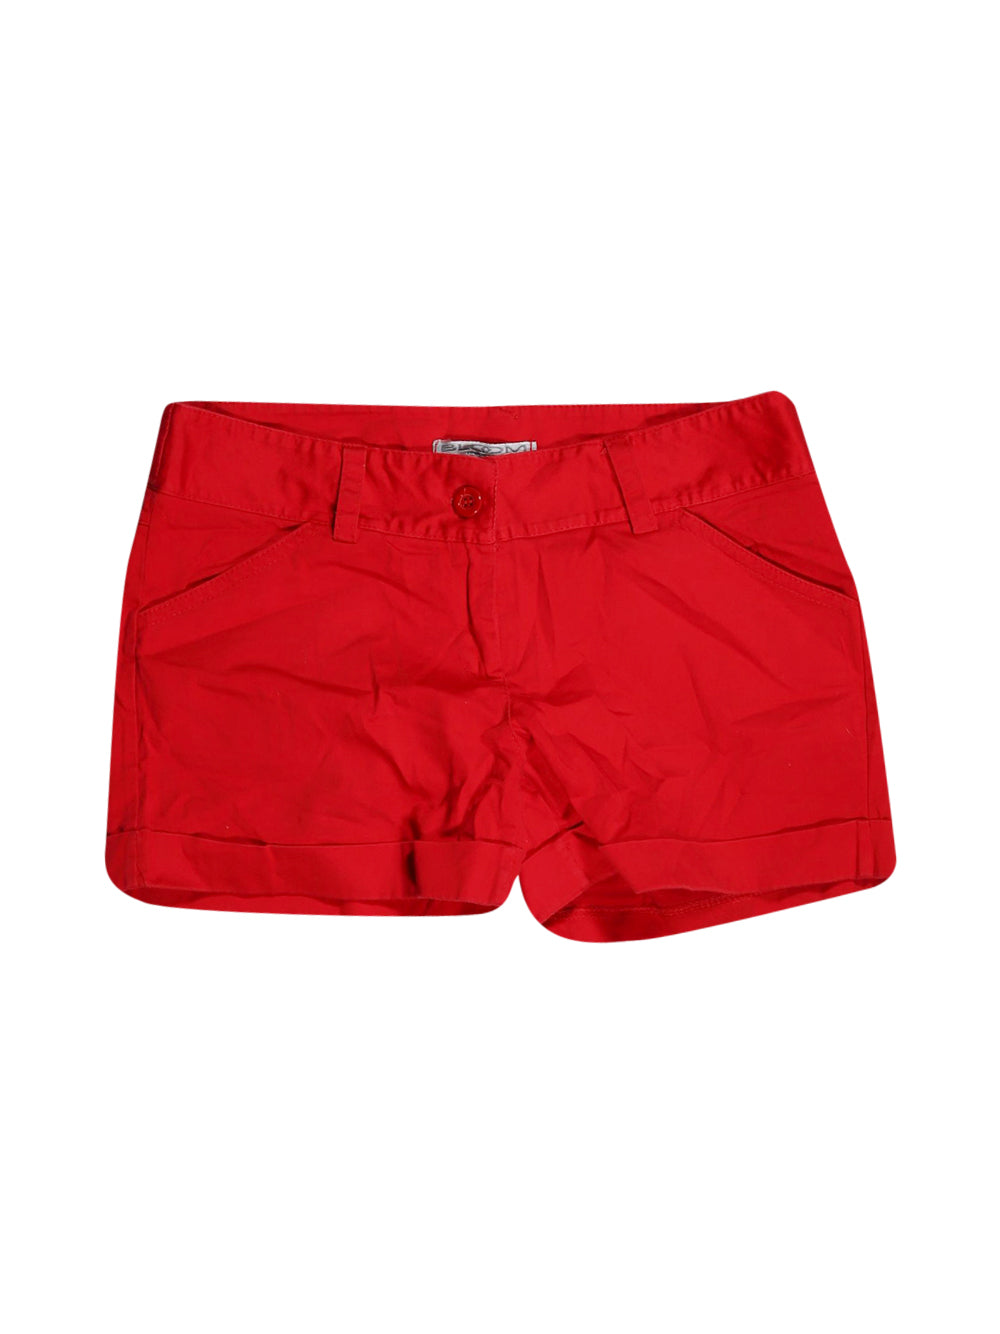 Front photo of Preloved Bloom Red Woman's shorts - size 10/M